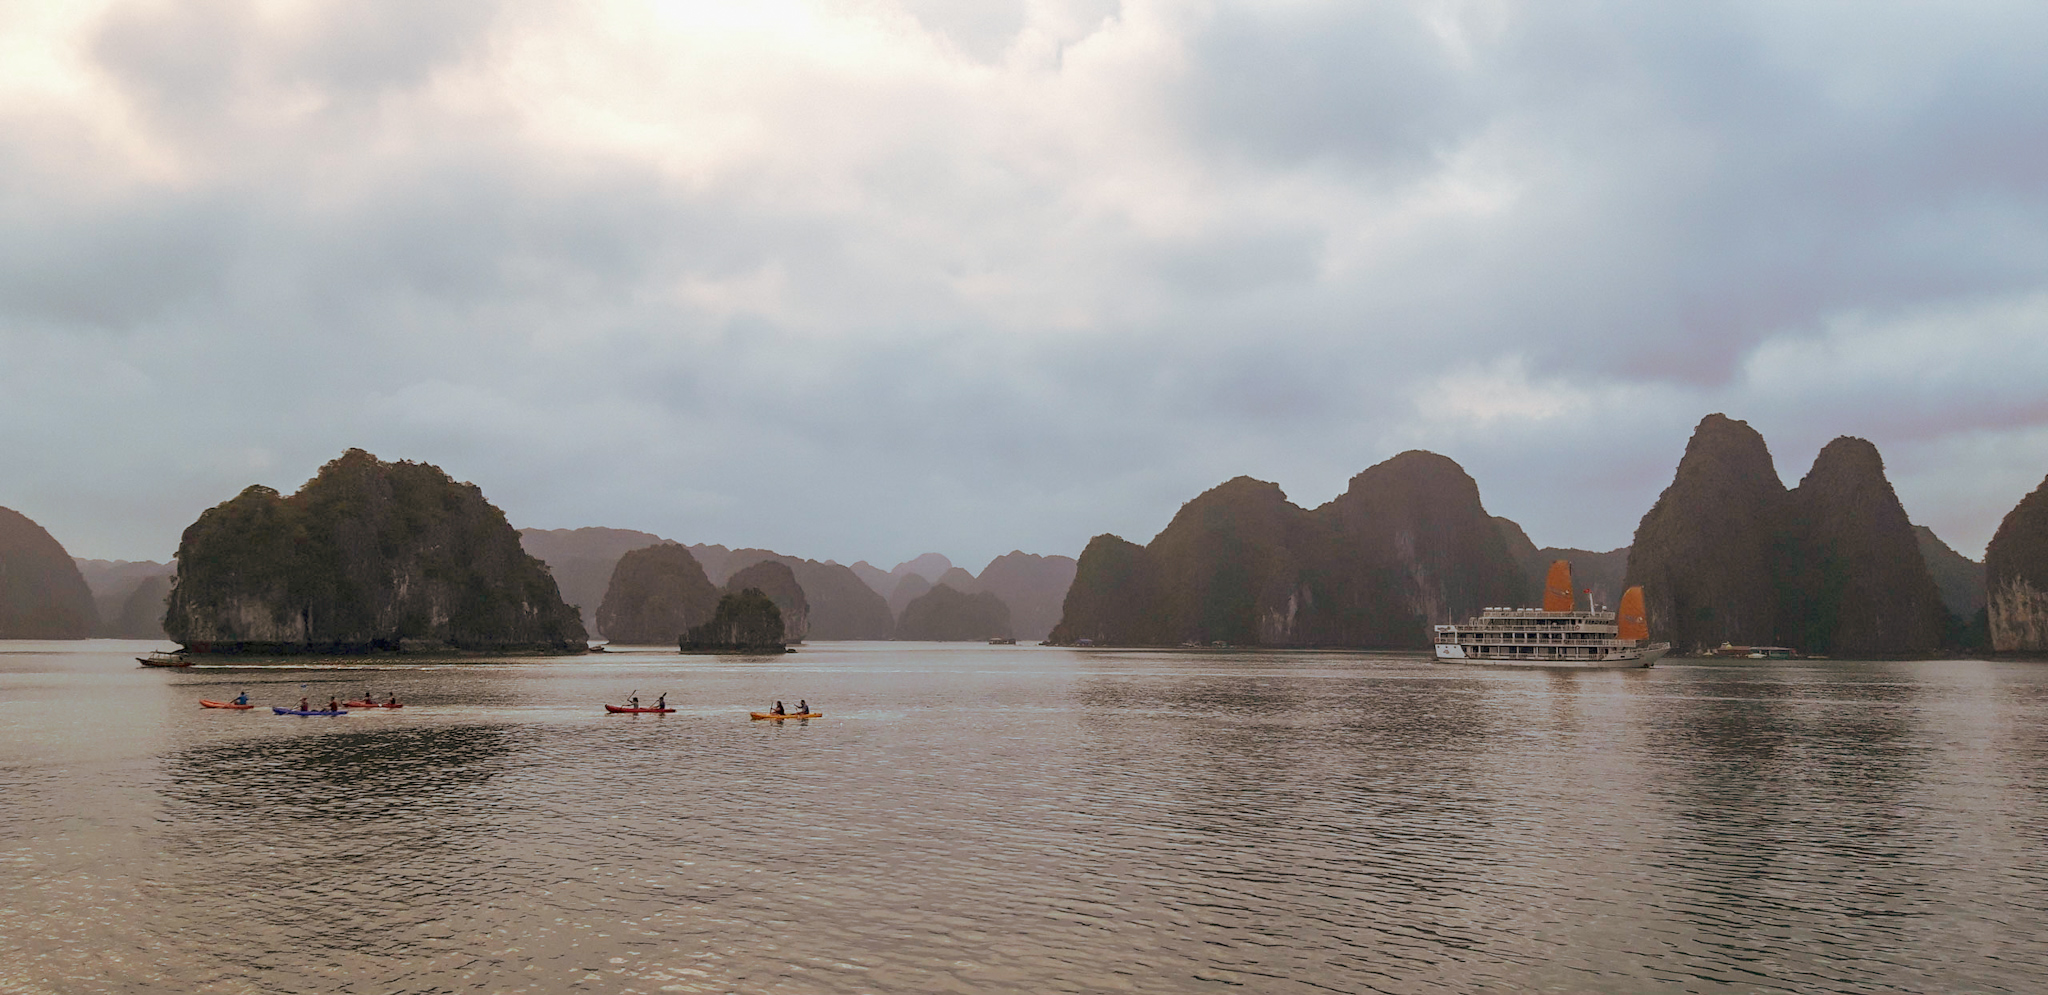 Searching for pictures of Halong Bay and thinking that someday I would be there was dreamy. It looks magnificent, and it is!